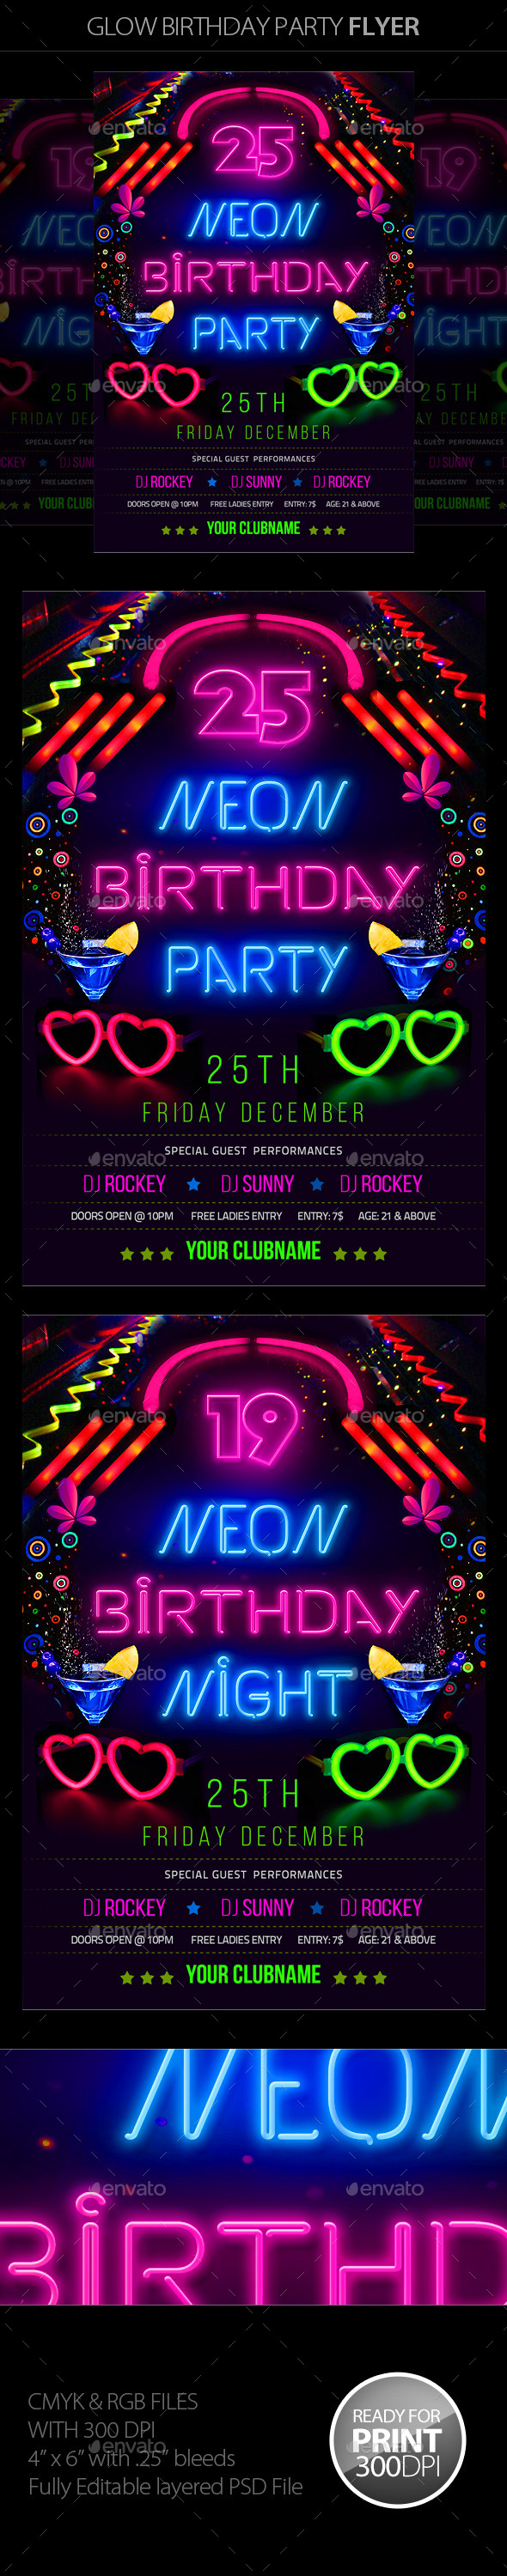 GraphicRiver Neon Birthday Party Flyer 11000048